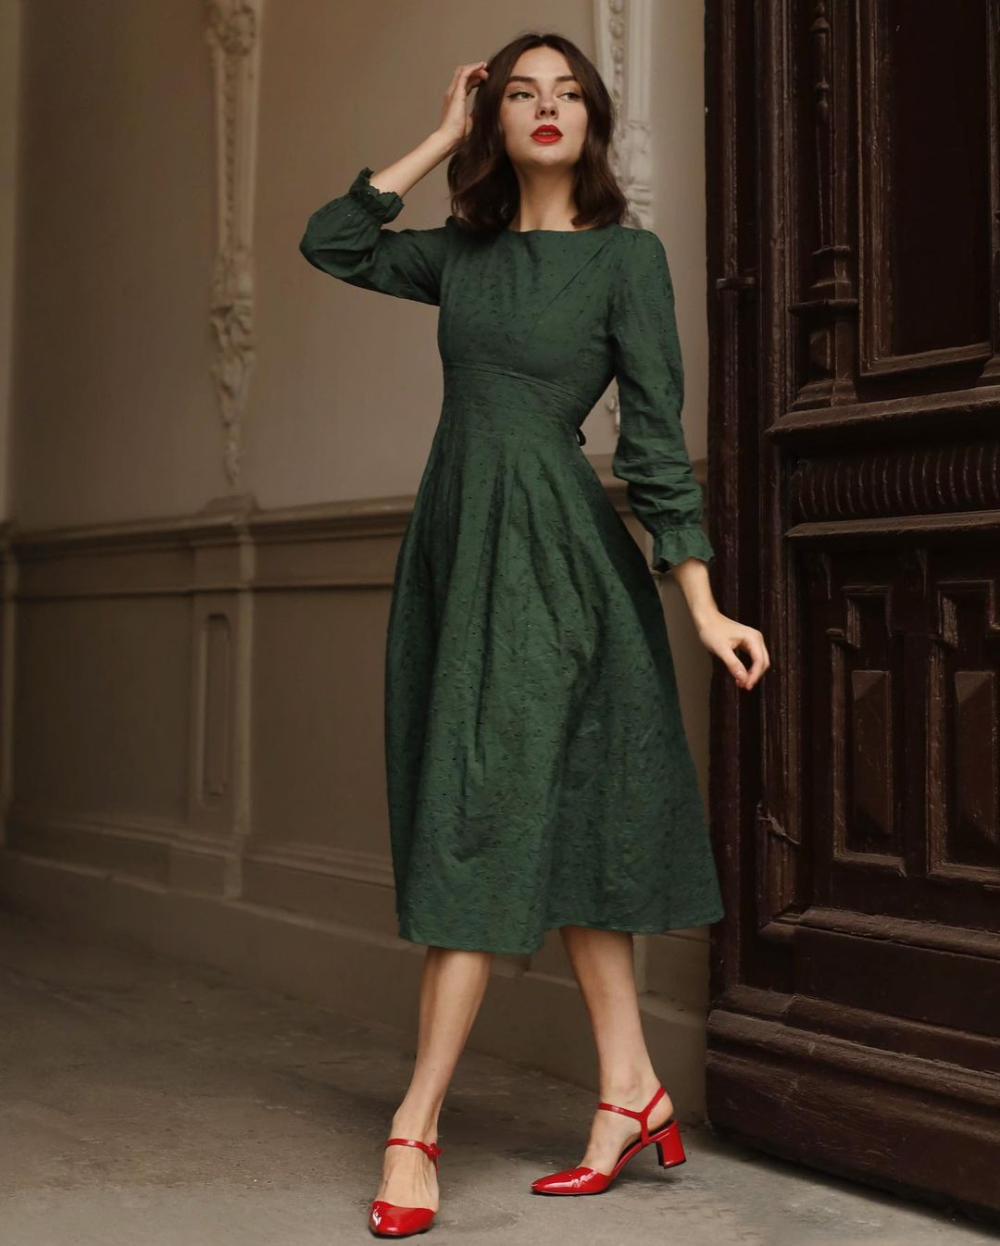 Simple Retro On Instagram One Of The Most Loved Dress By Srgirls Search Lorraine Dark Green Long Sleeve Green Long Sleeve Dress Fashion Long Sleeve Dress [ 1246 x 1000 Pixel ]